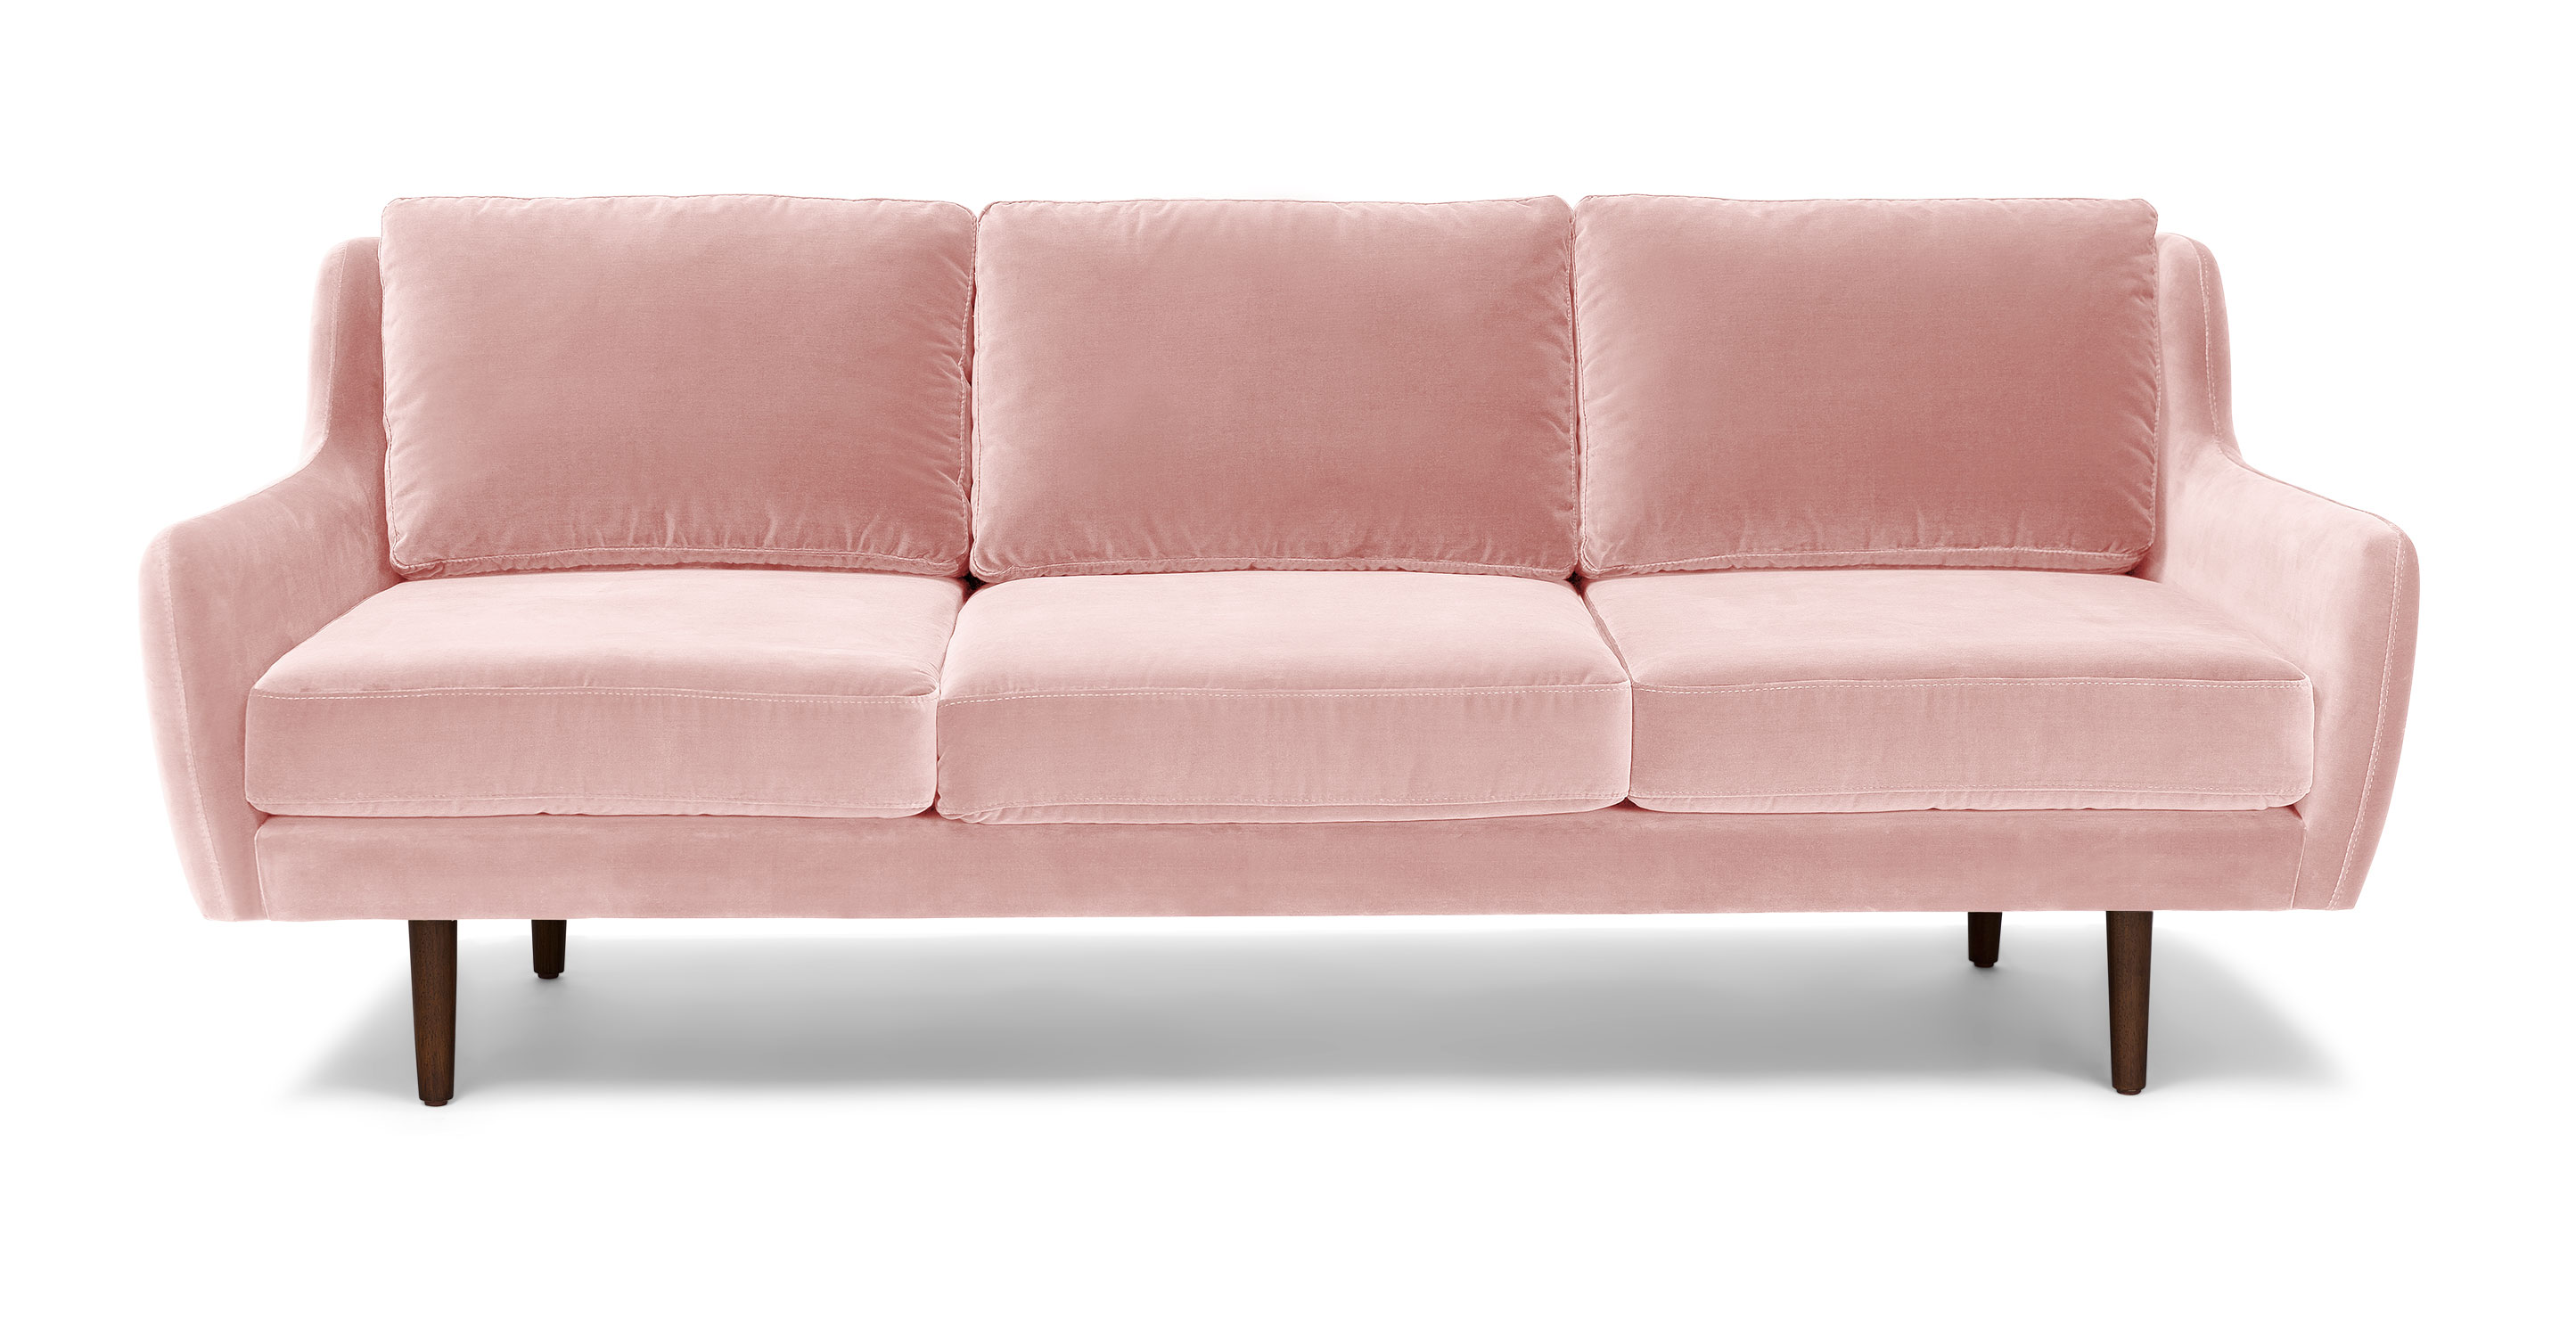 Matrix blush pink sofa sofas article modern mid for Modern love seats